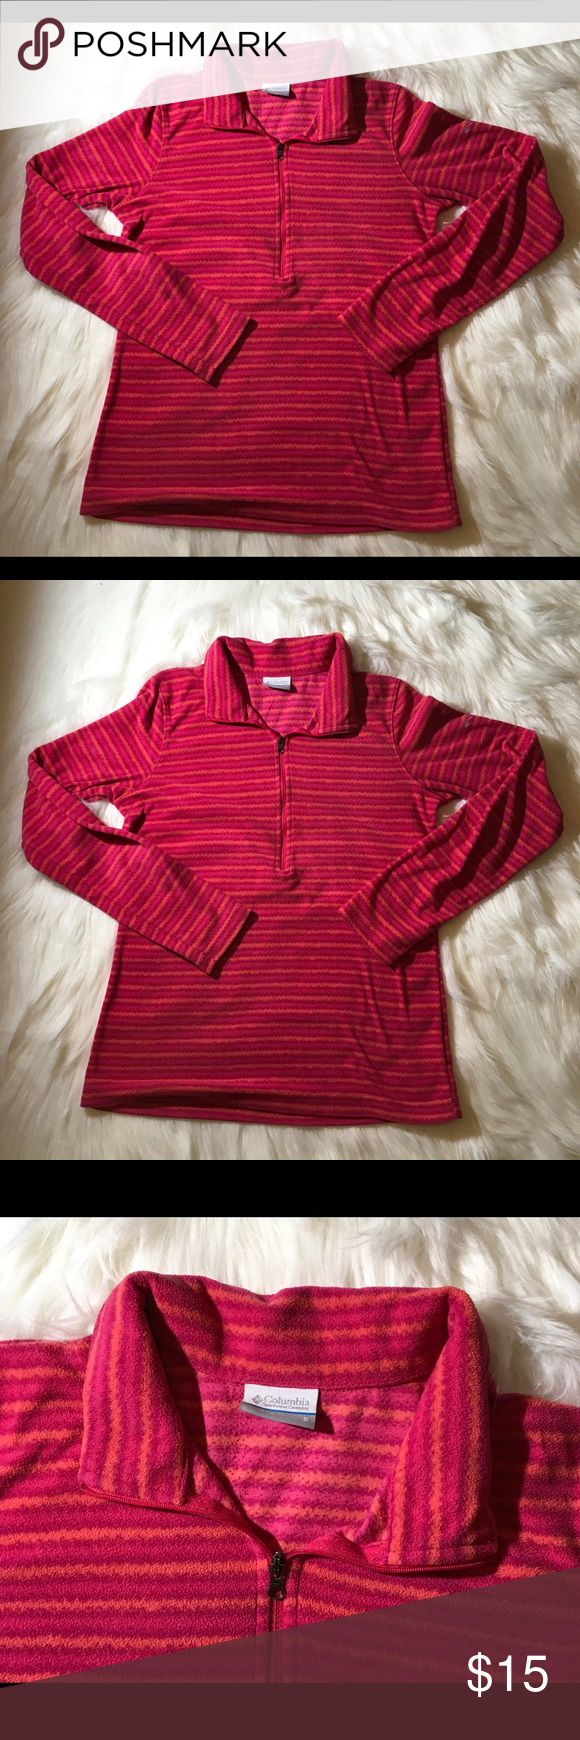 """Columbia Women's Long Sleeve 1/4 Zip Shirt S Columbia Women's Long Sleeve Athletic T-Shirt Lightweight Fleece, Size Small  Striped- Pinks with Orange  1/4 Zippers  Gently used- some interior pilling Arm Pit to Arm Pit 19"""" laying flat  Total Length 25"""" Clean and Smoke Free Home Columbia Tops Tees - Long Sleeve"""